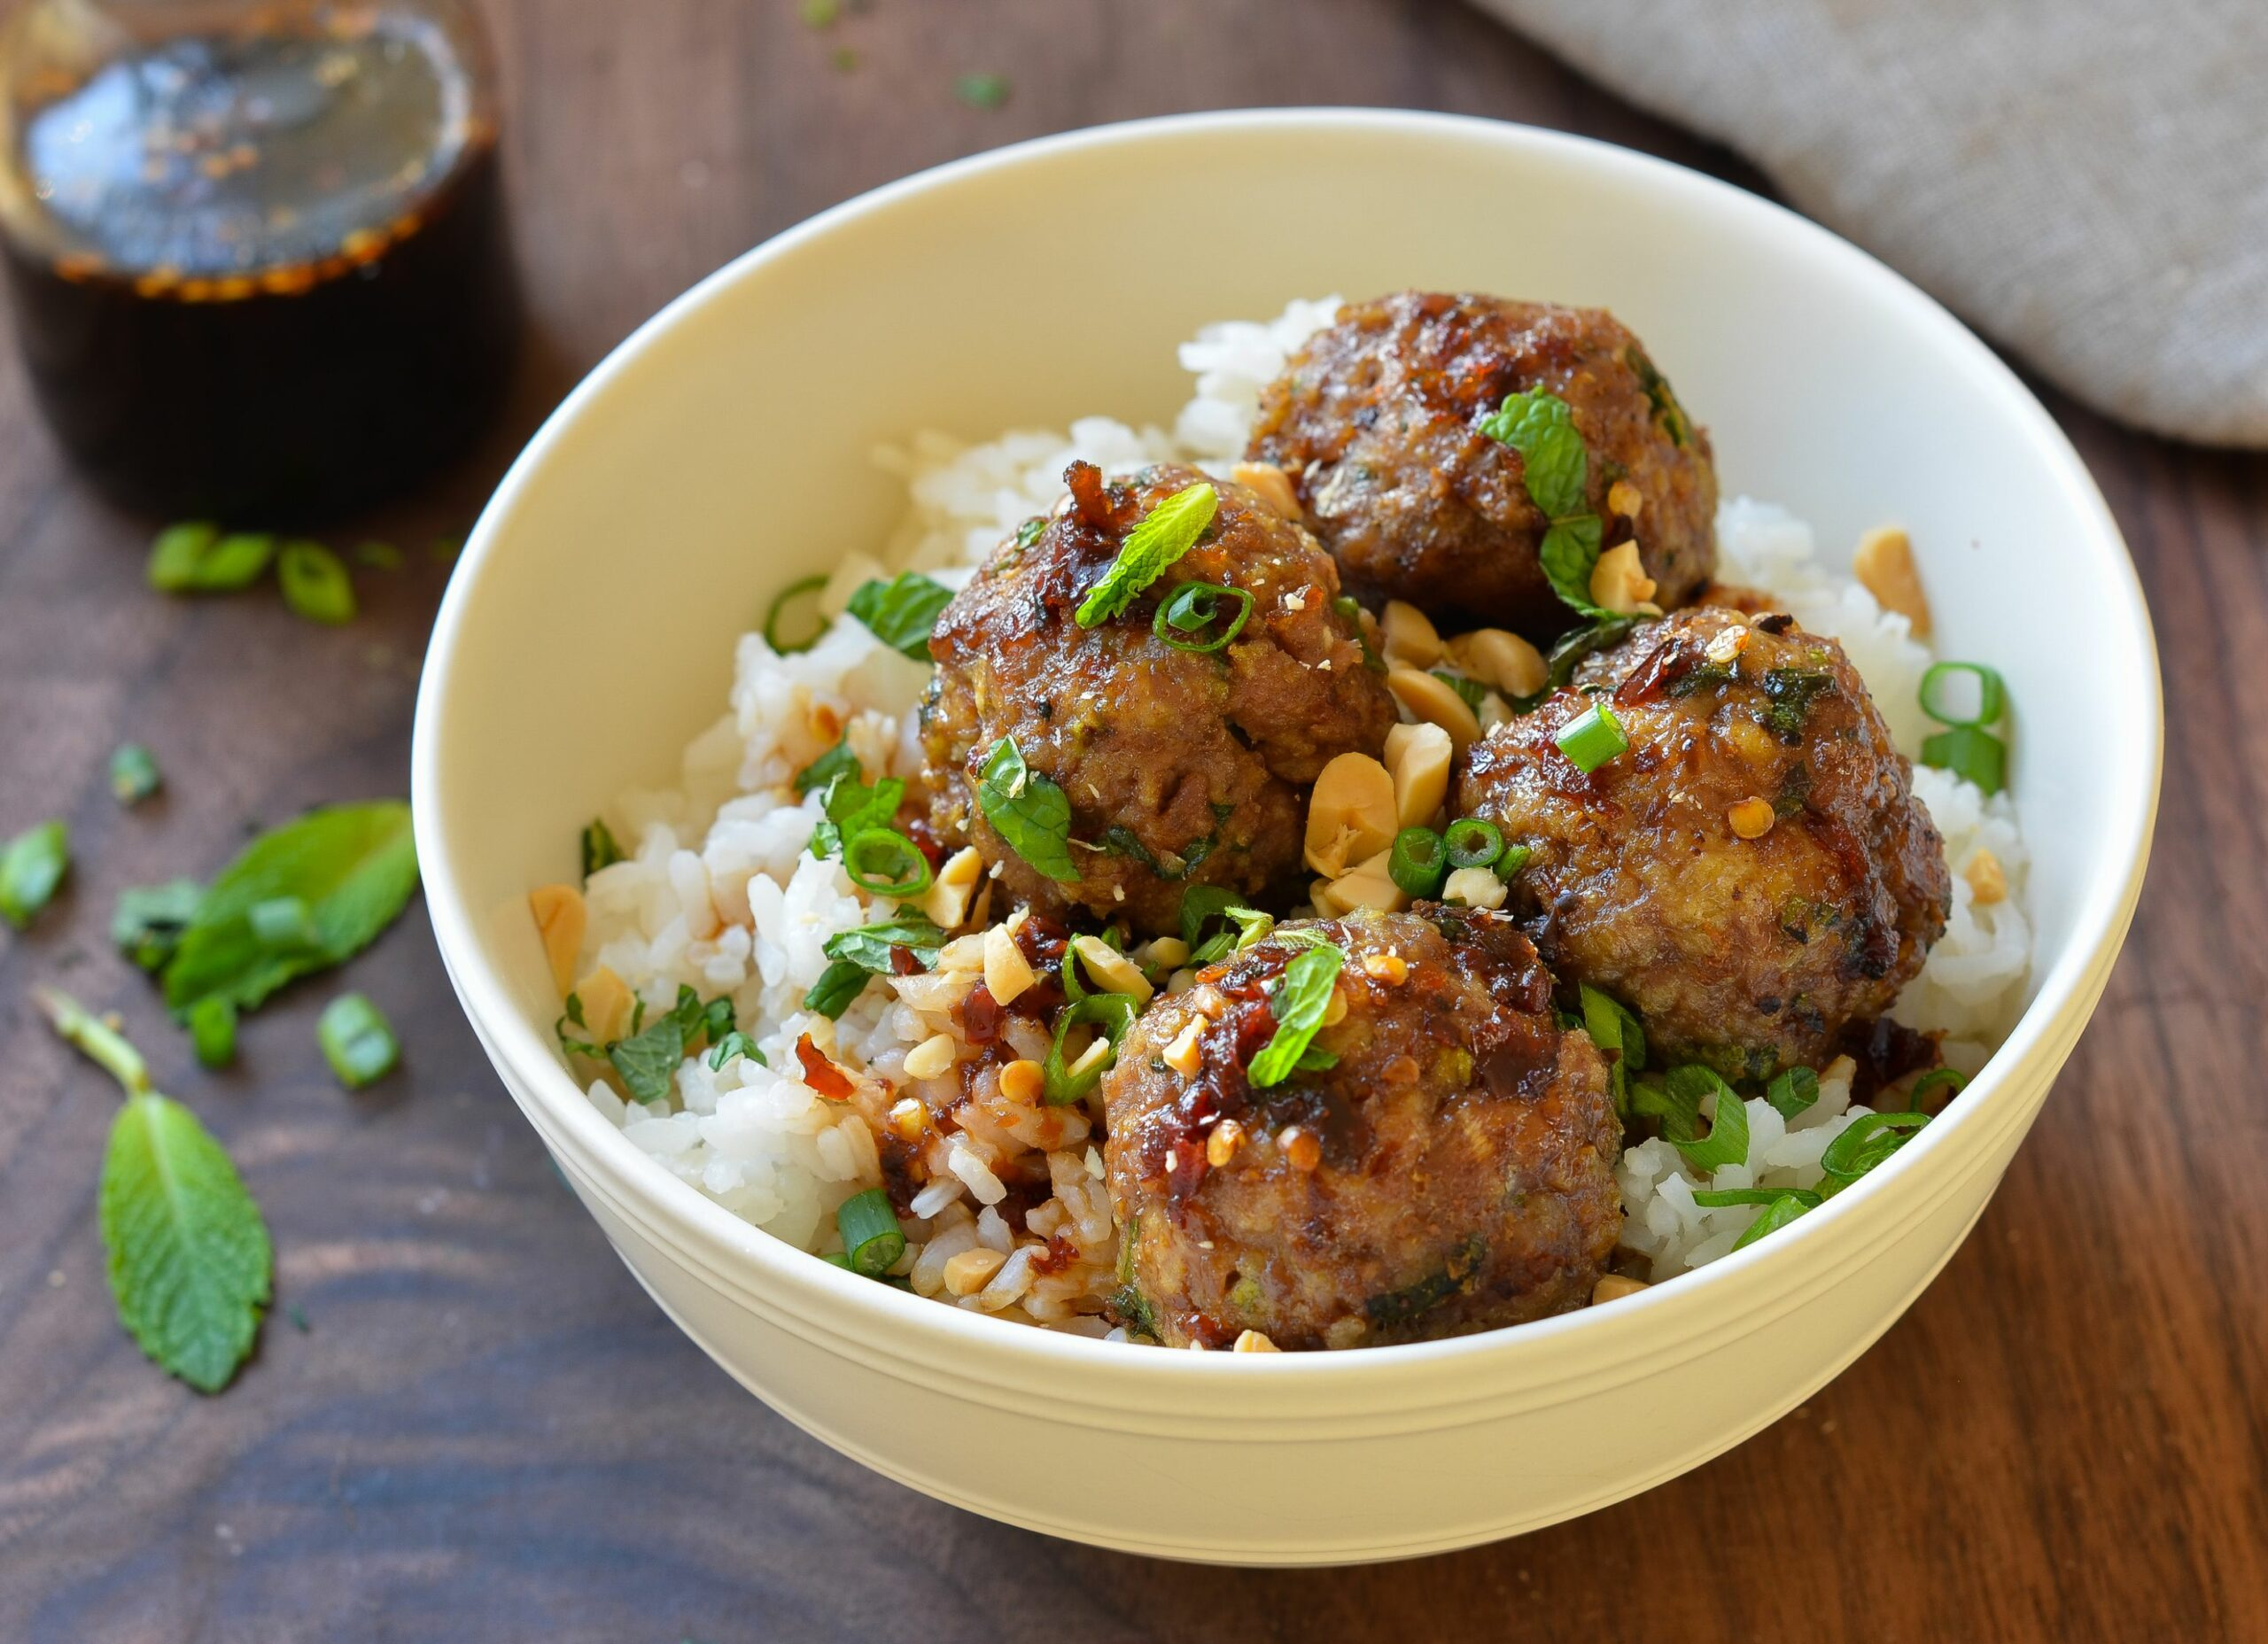 Vietnamese-Style Meatballs with Chili Sauce - Recipes Beef Meatballs